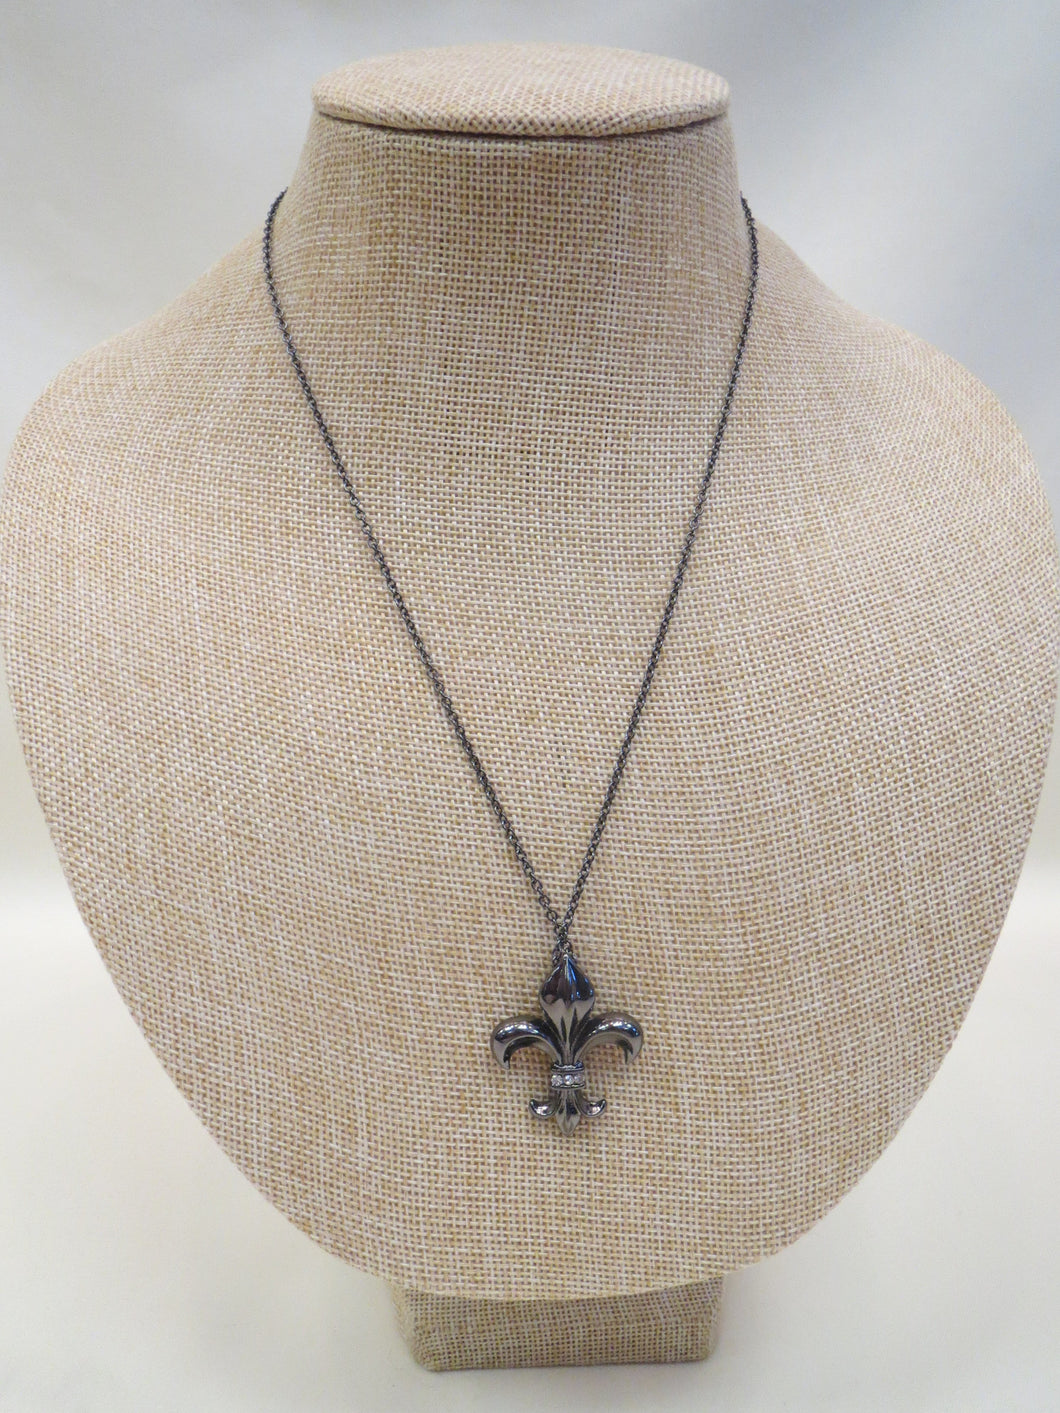 ADO | Black Chain with Fleur De Lis Pendant - All Decd Out